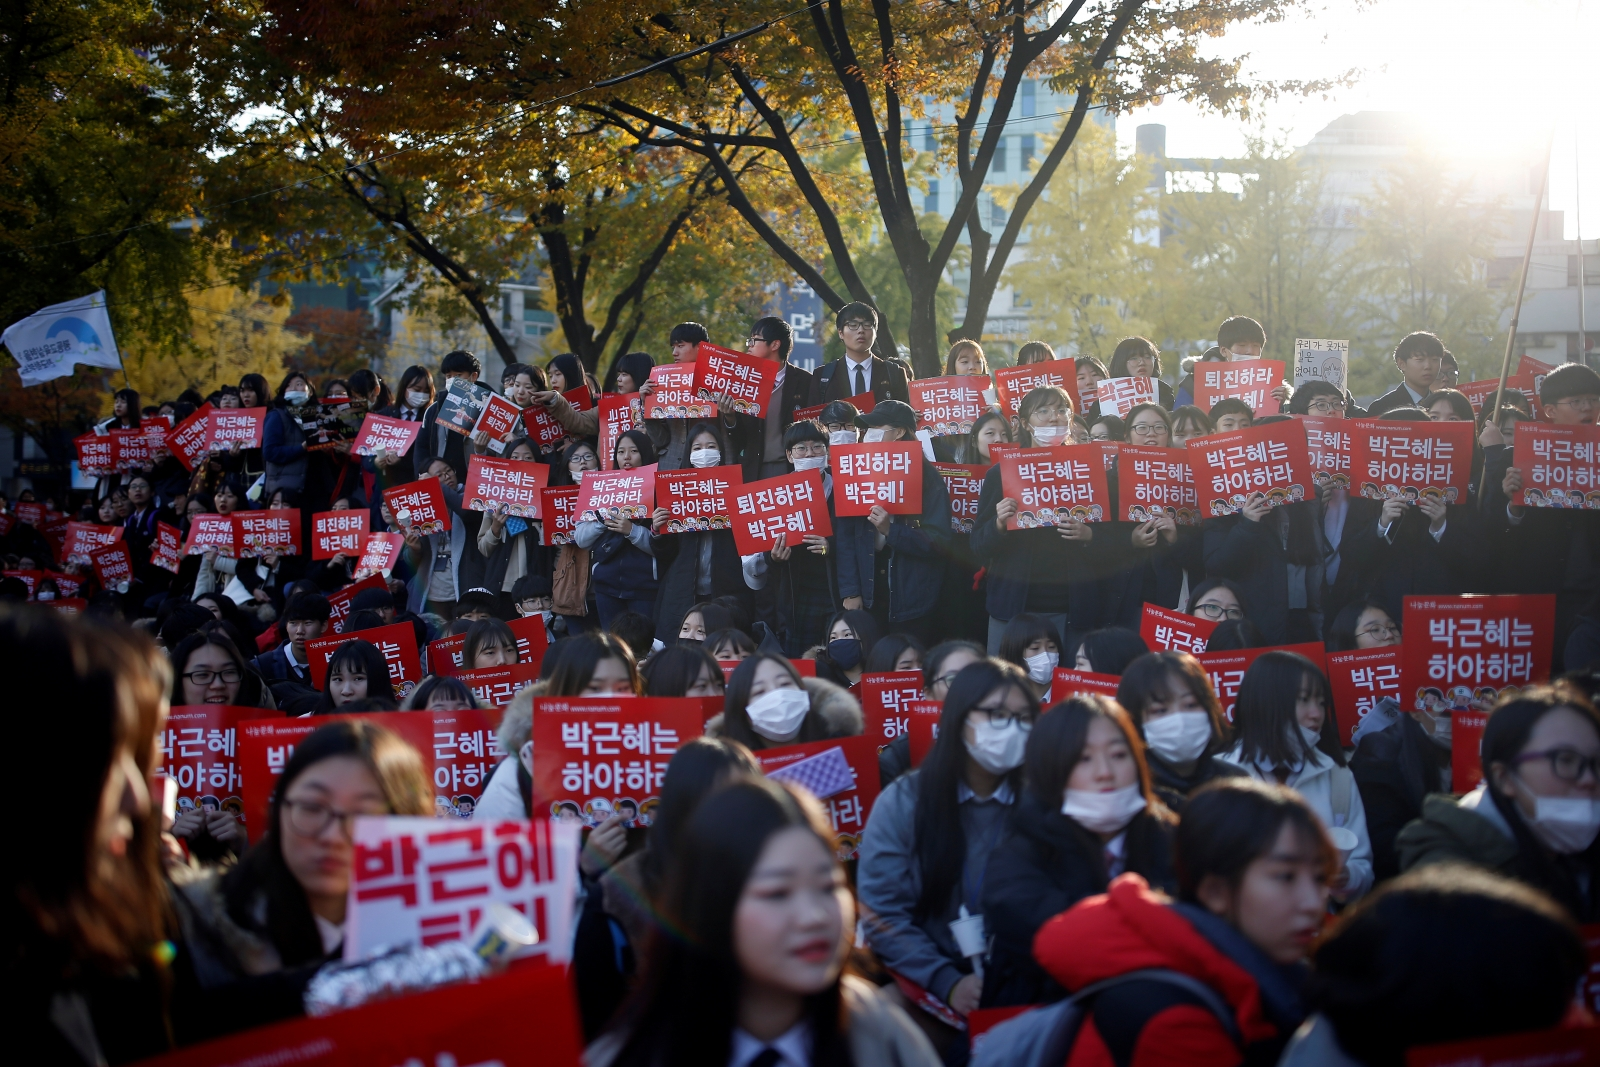 South Korea Tens Of Thousands Gather For Mass Protest